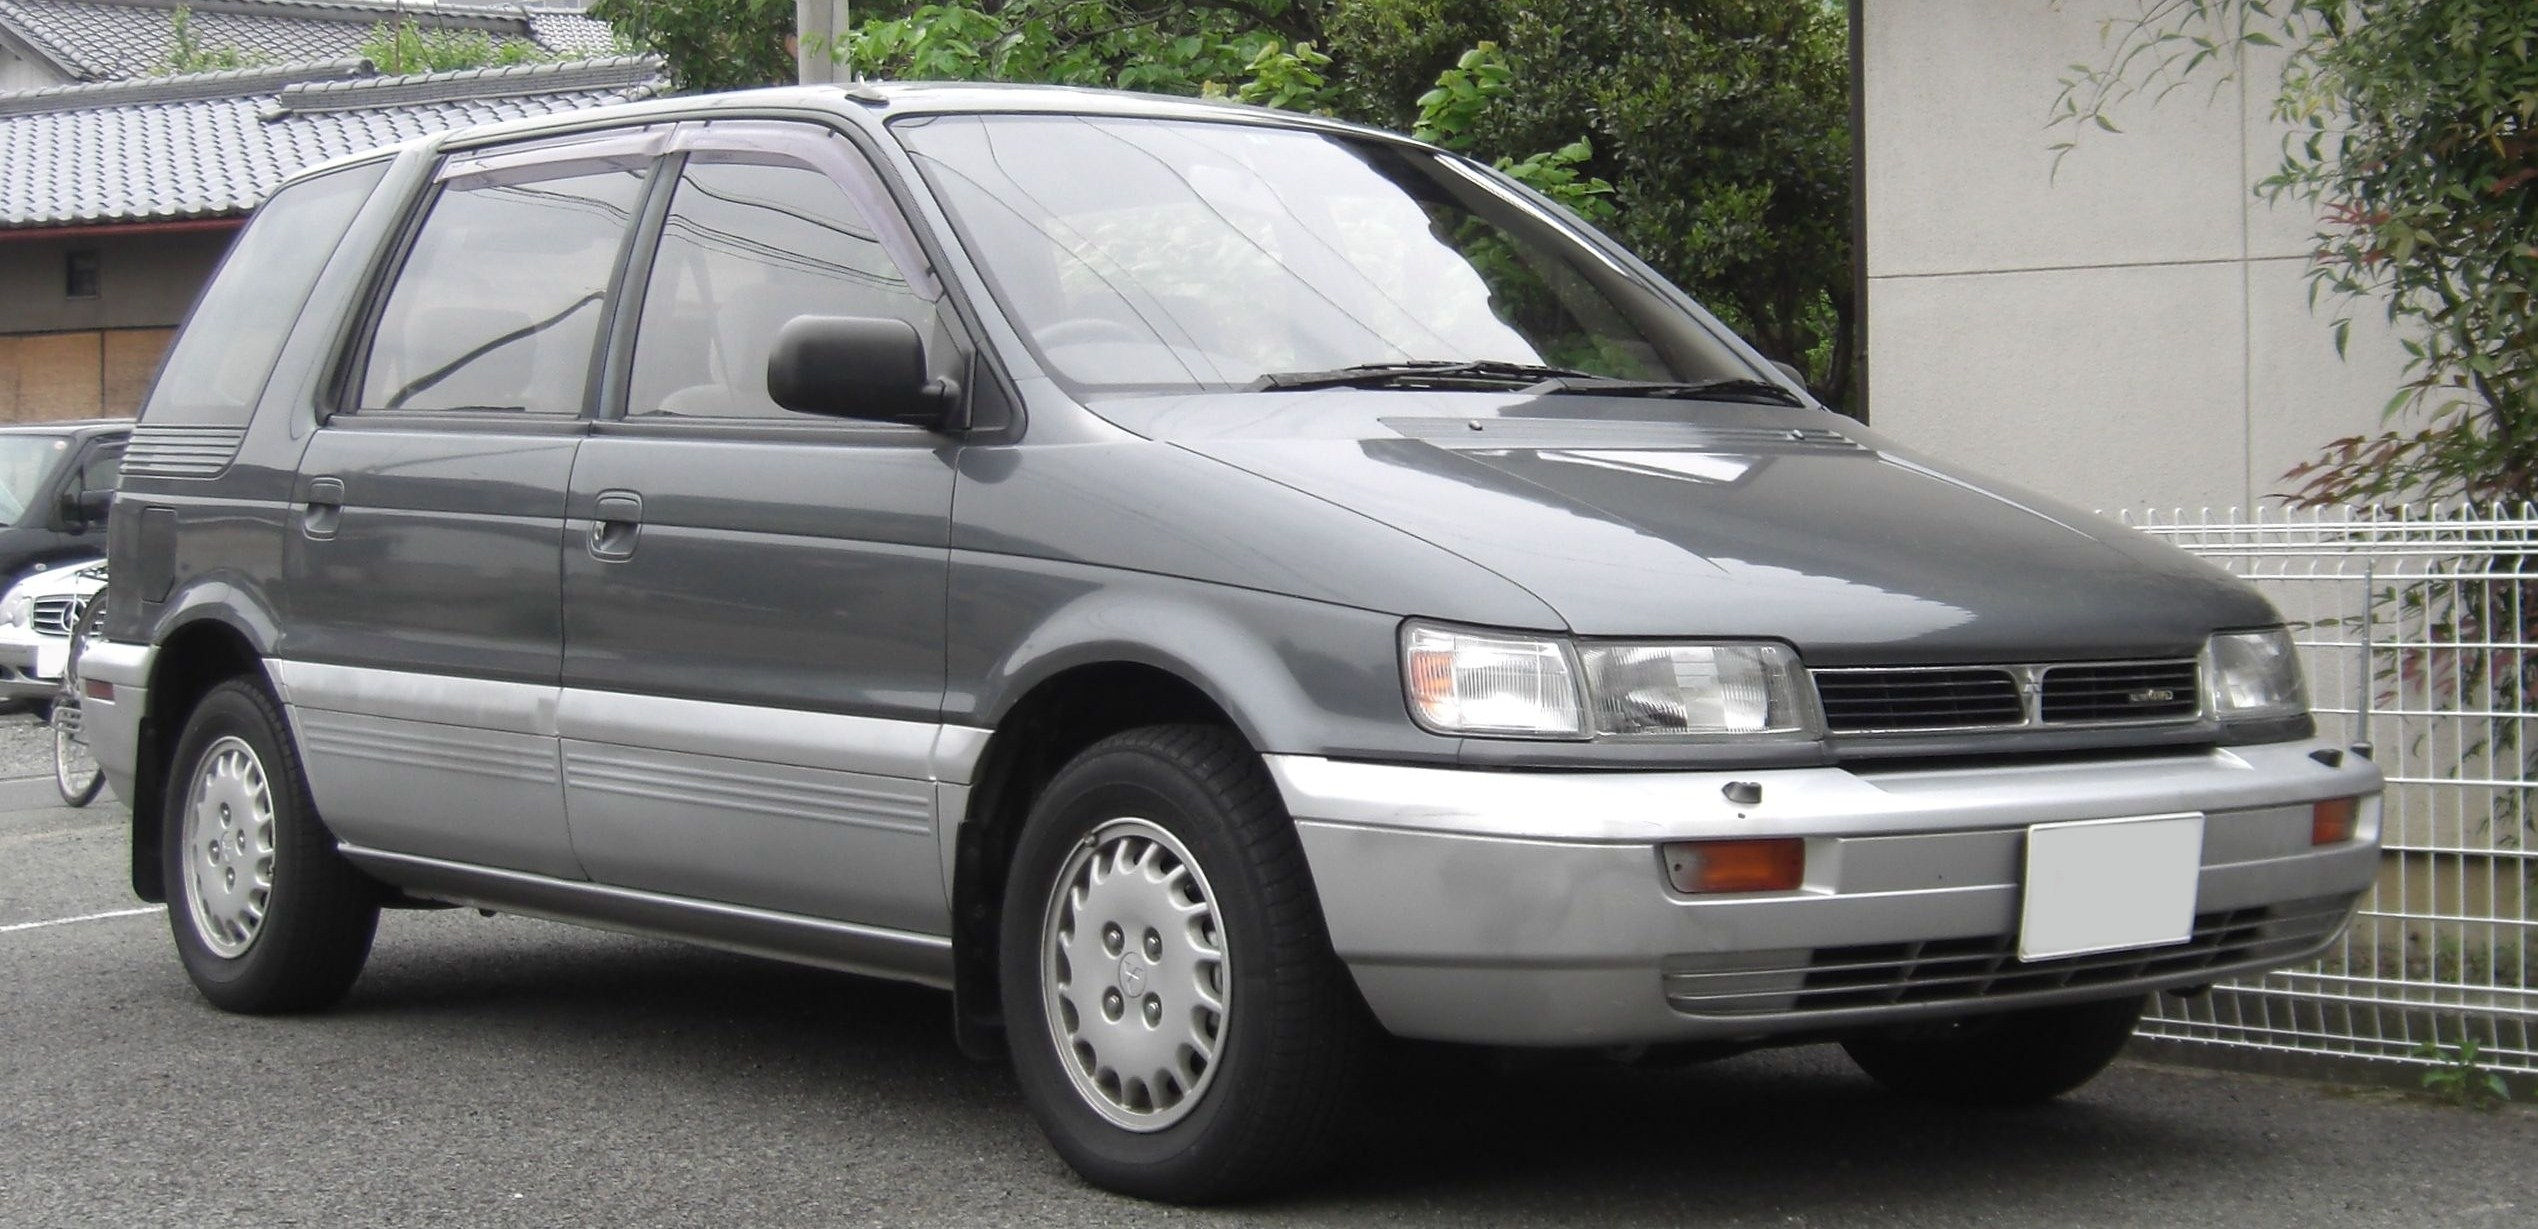 1992 Mitsubishi Space Wagon #8